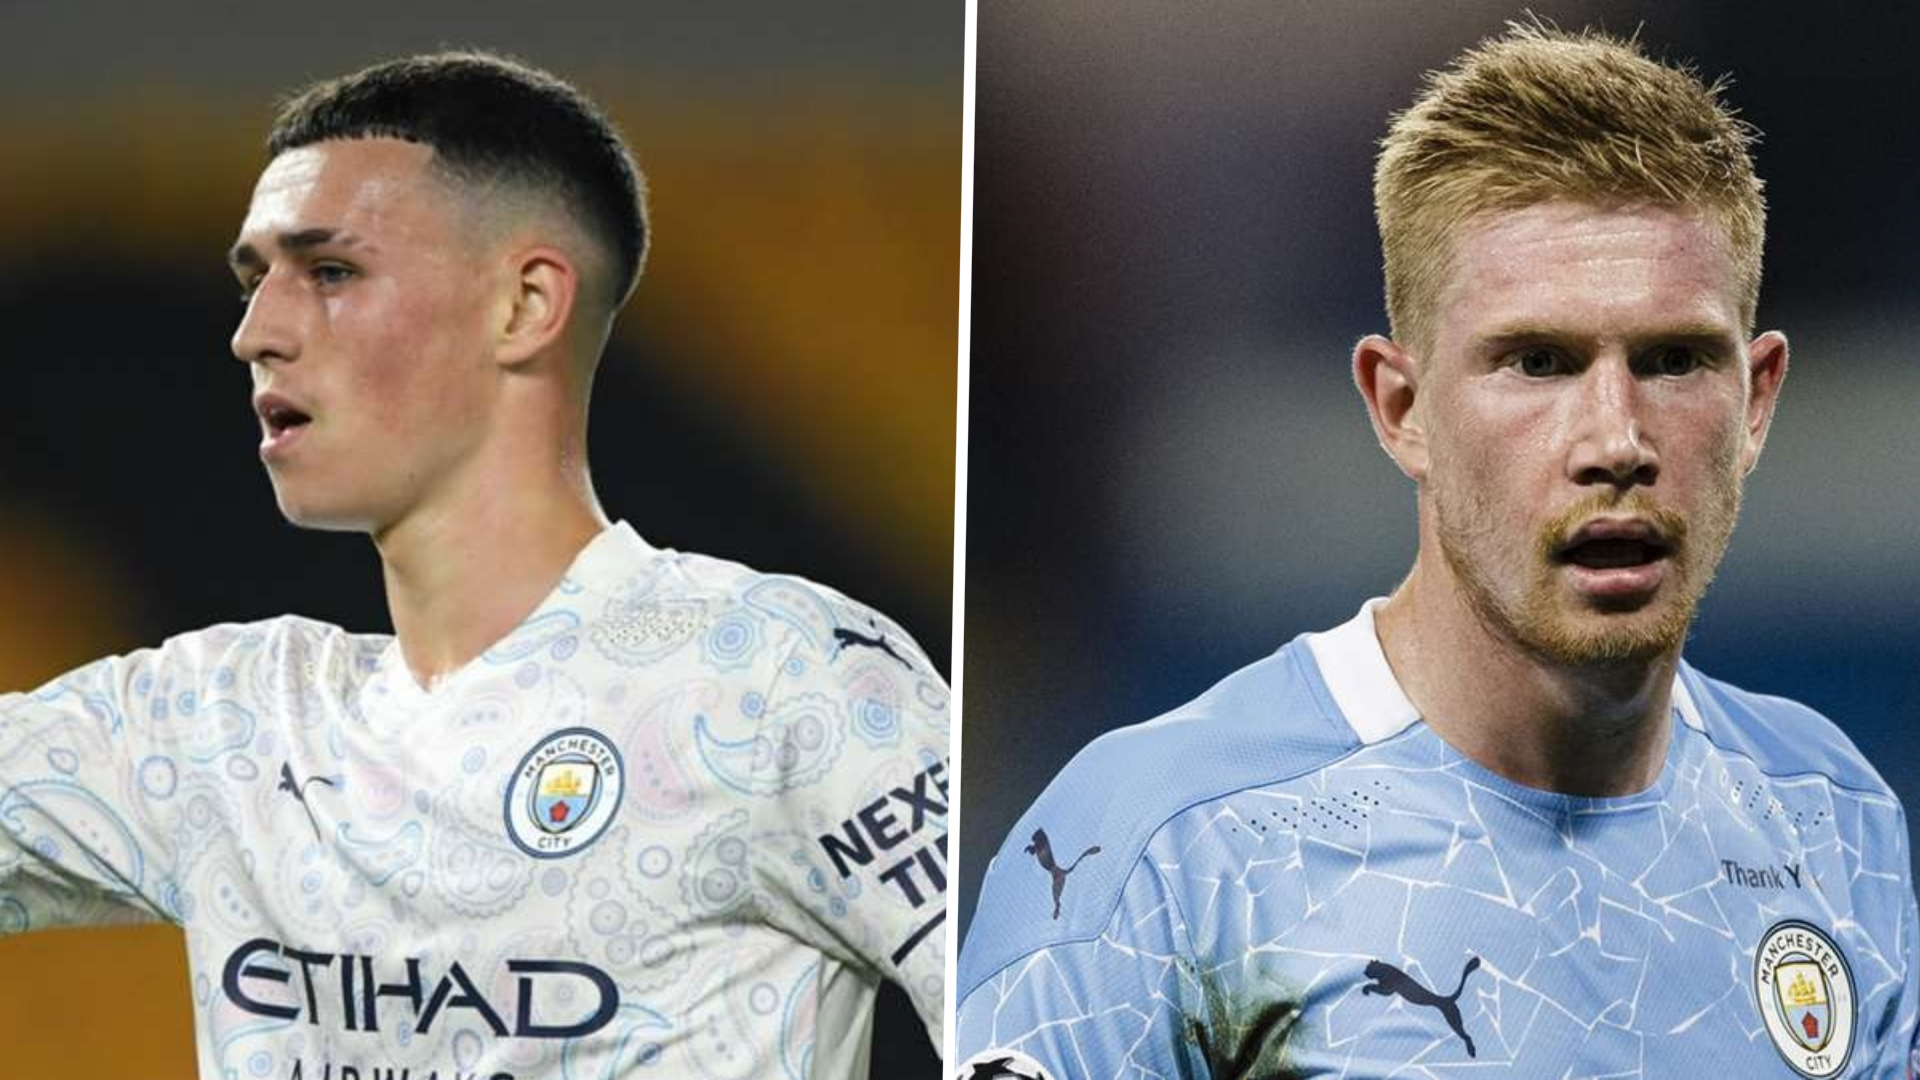 Guardiola confirms De Bruyne and Foden will be out 'a while' as Man City boss preps for Grealish debut